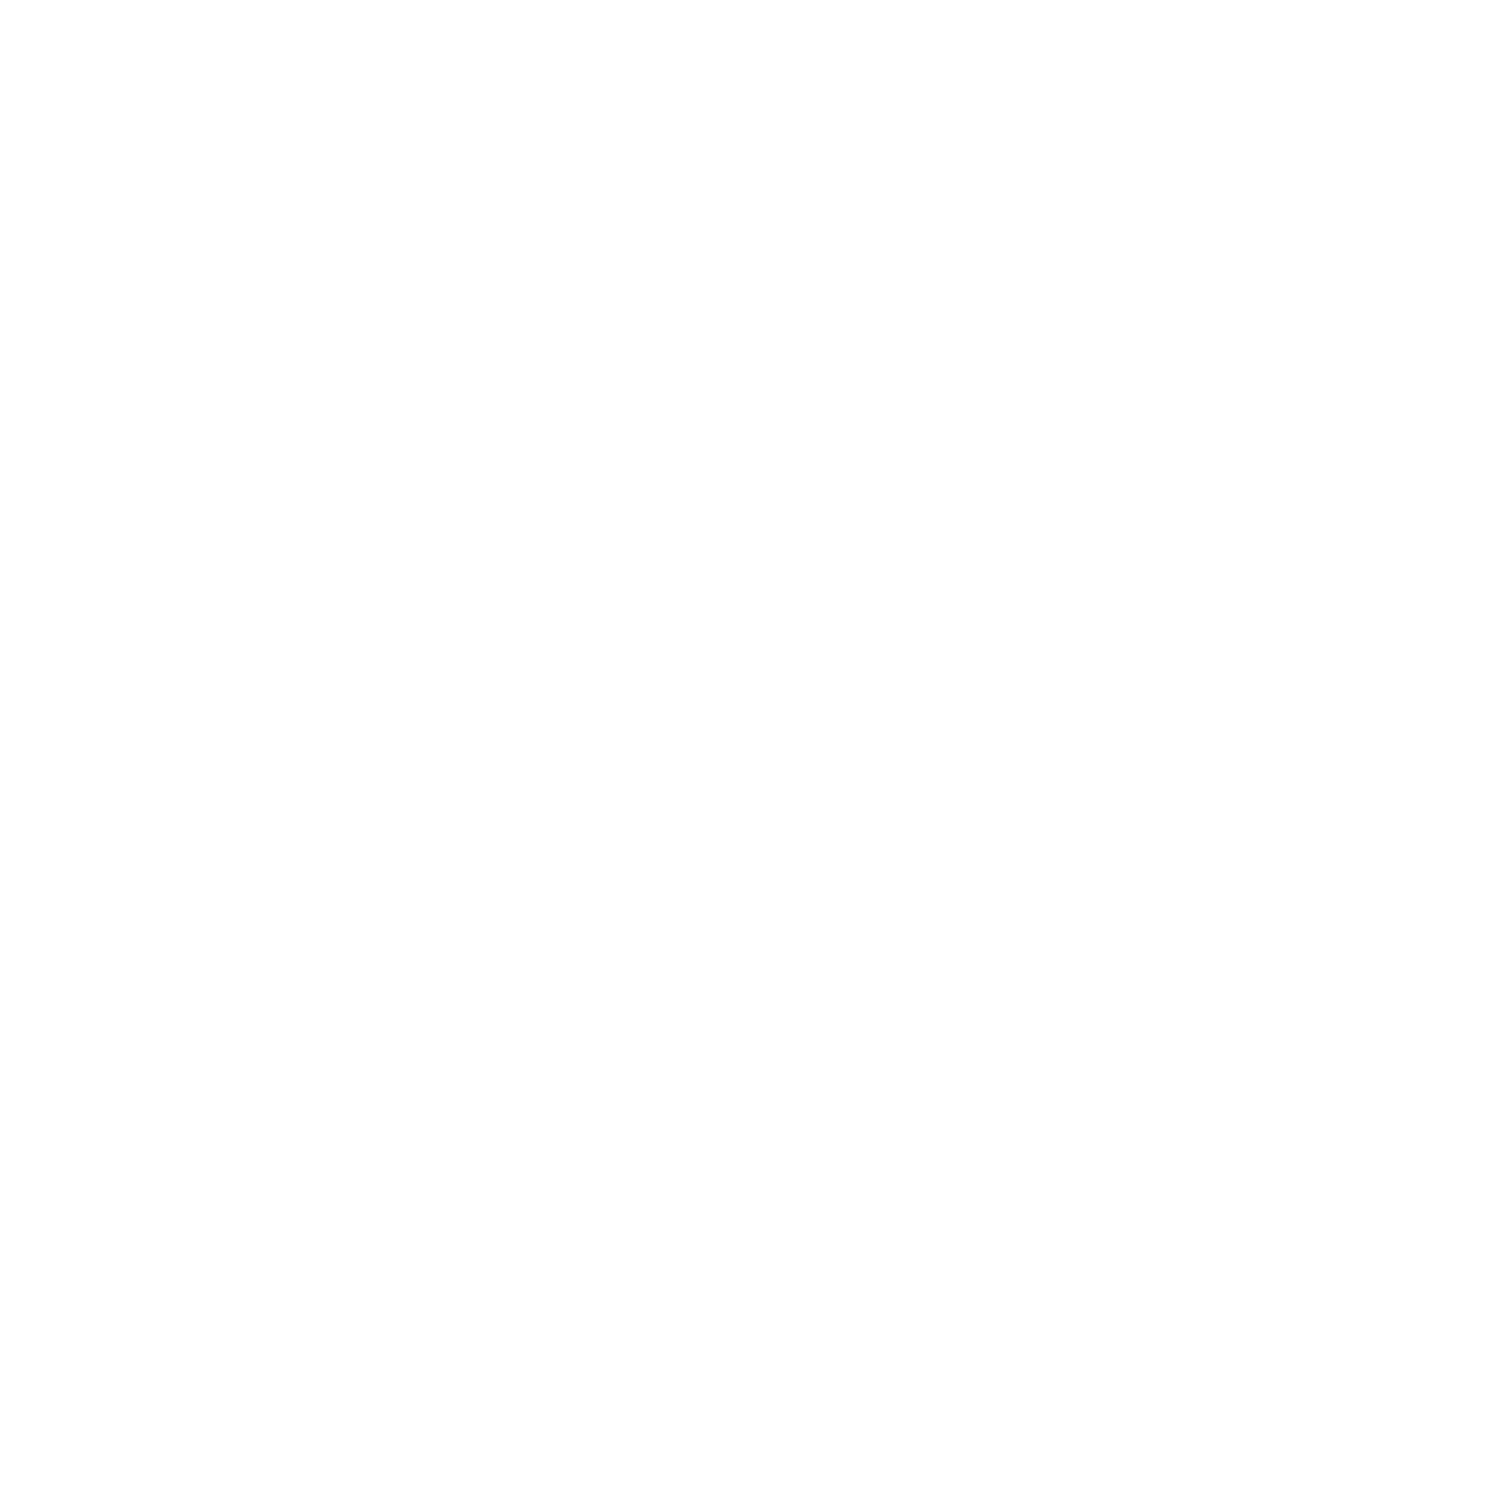 Westport Ale House